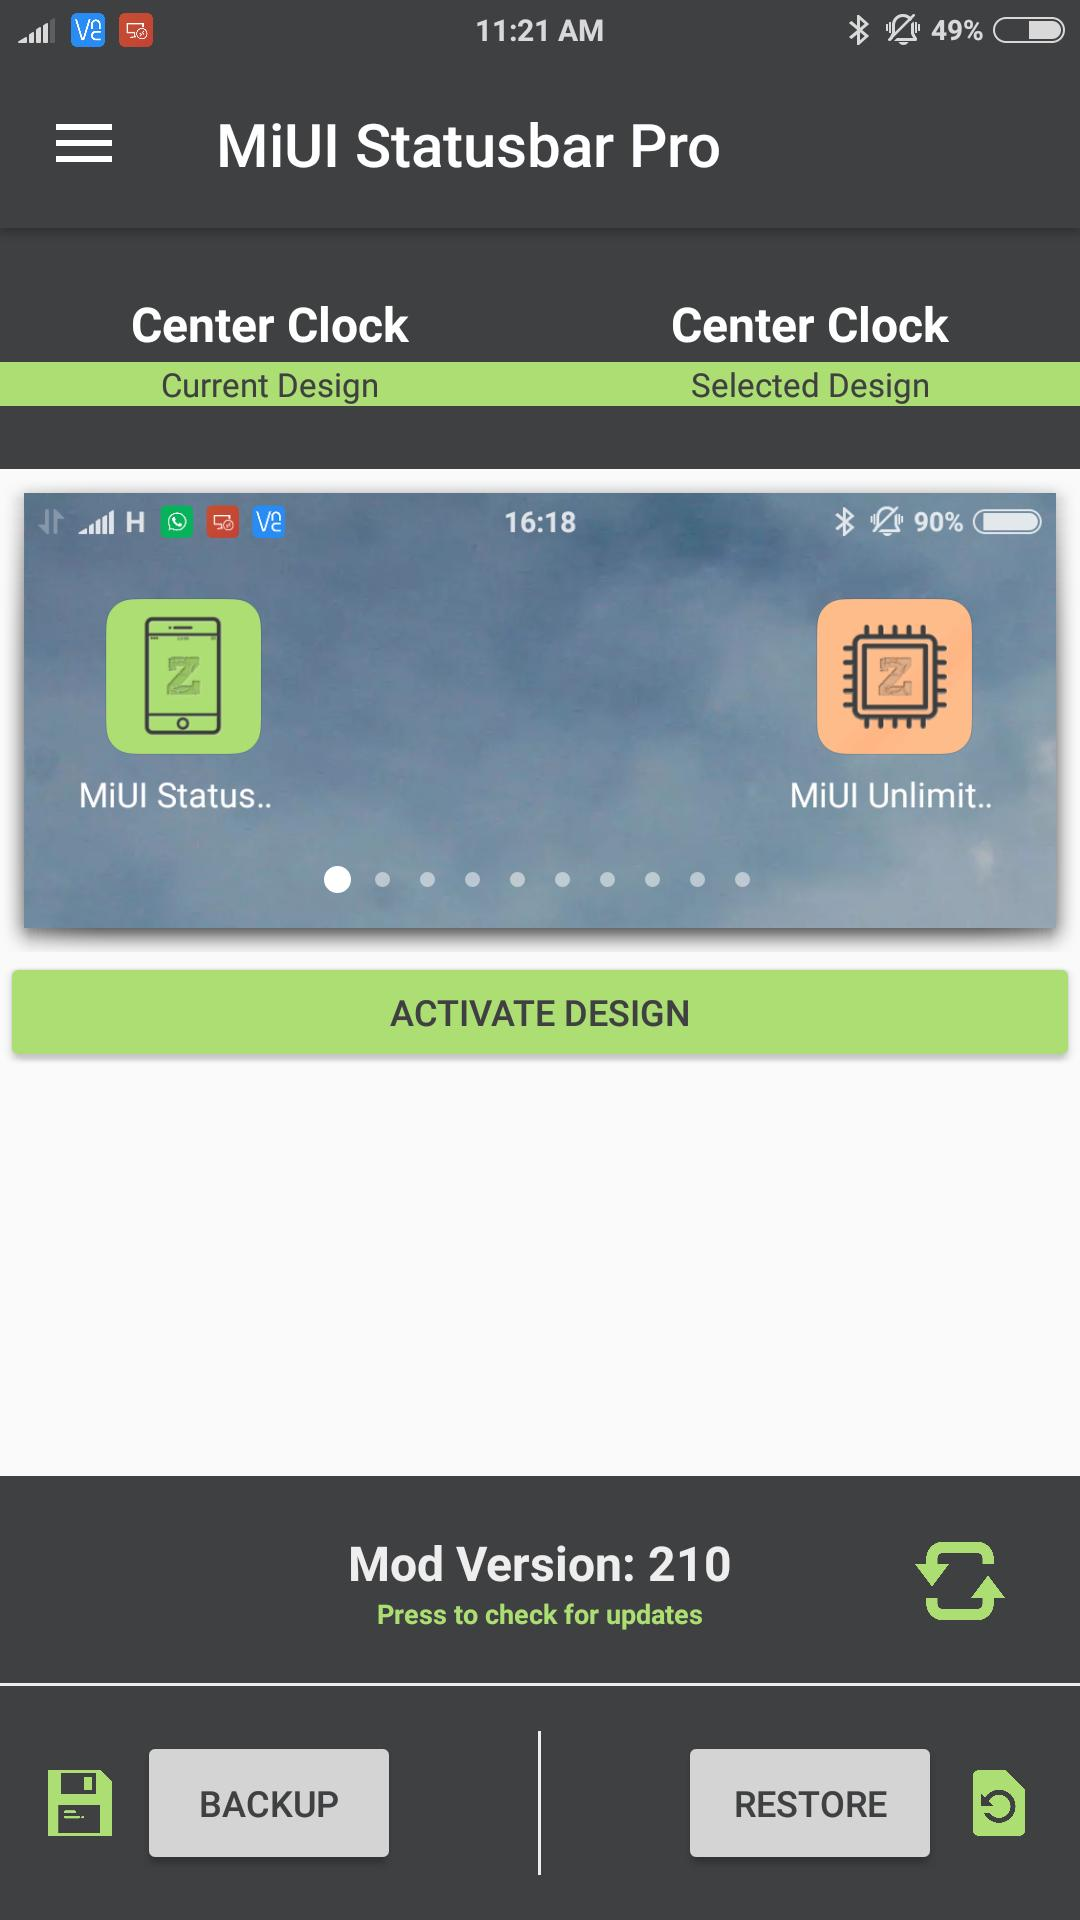 MiUI Statusbar Pro for Android - APK Download